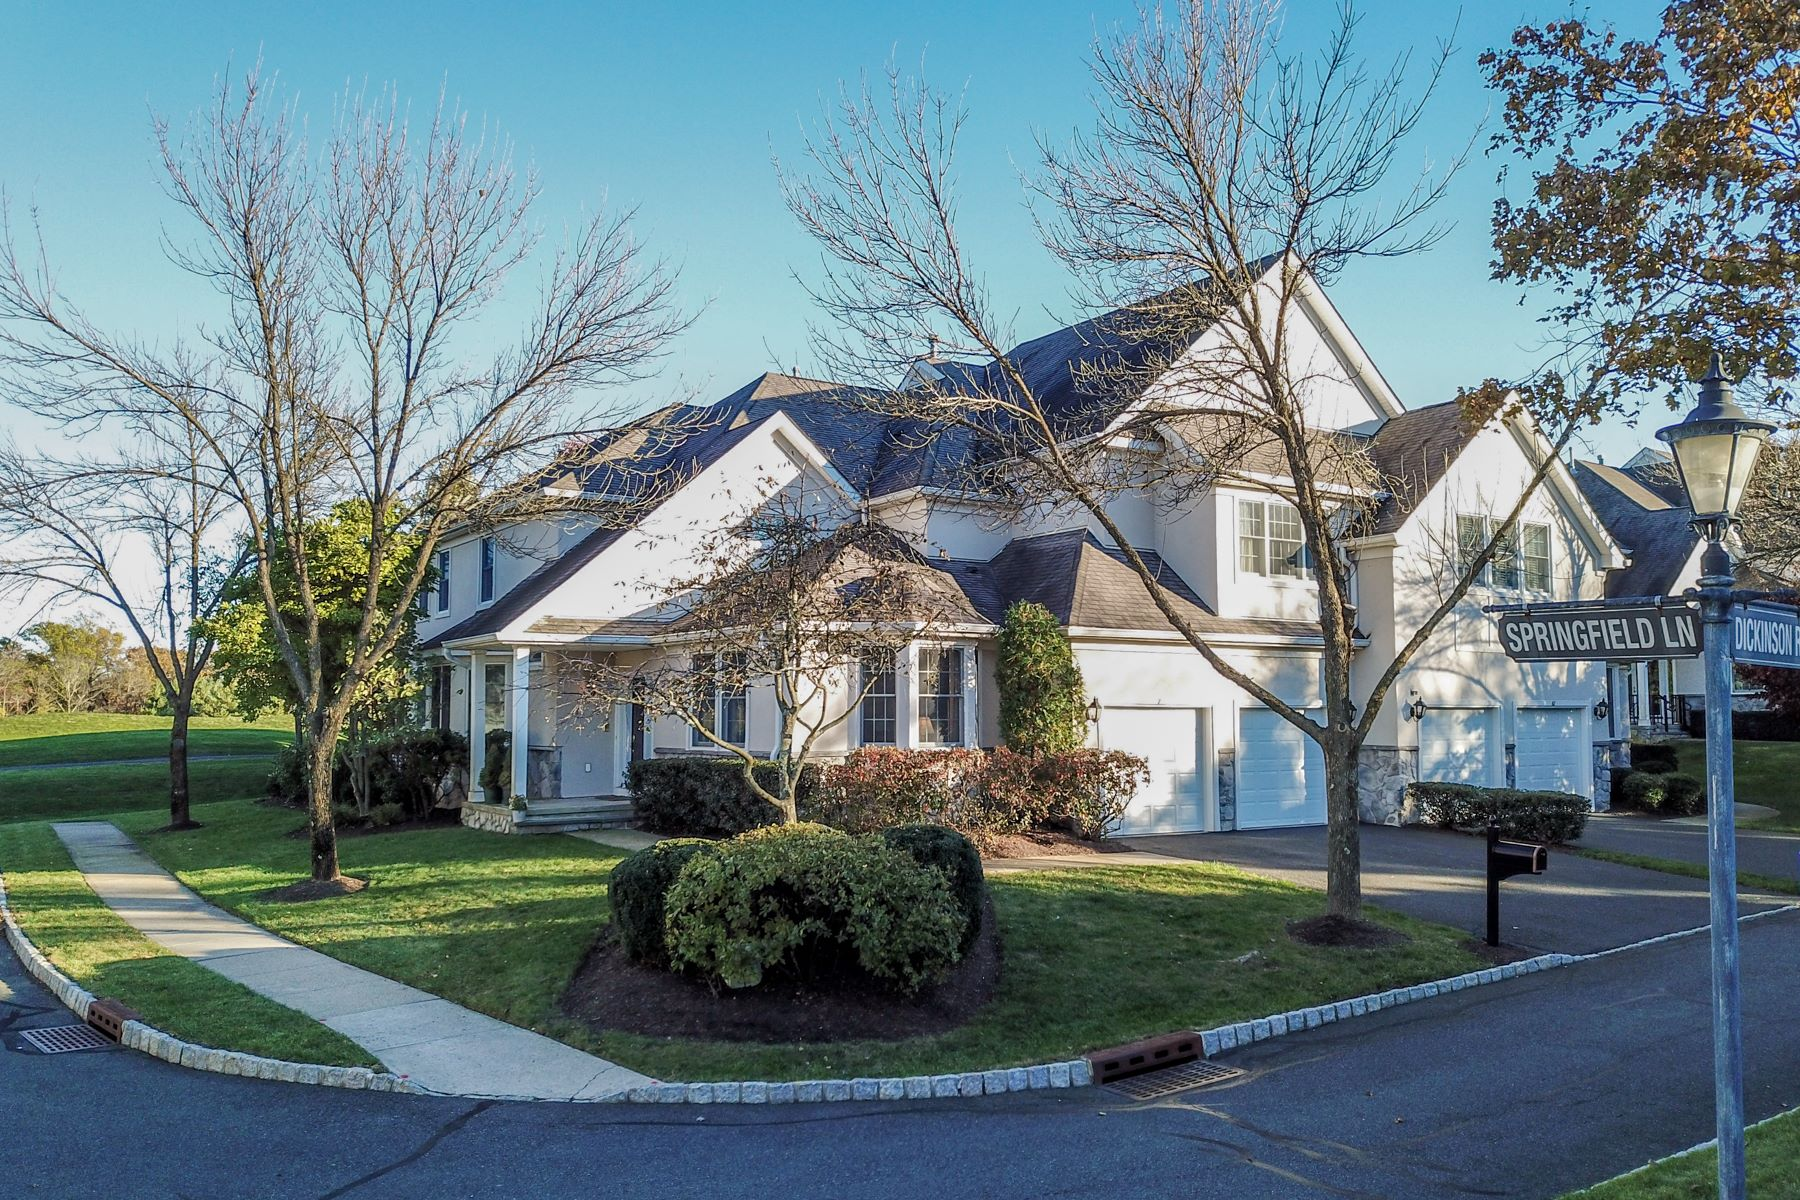 Townhouse for Sale at End Unit Townhouse 7 Springfield Lane, Basking Ridge, New Jersey 07920 United States